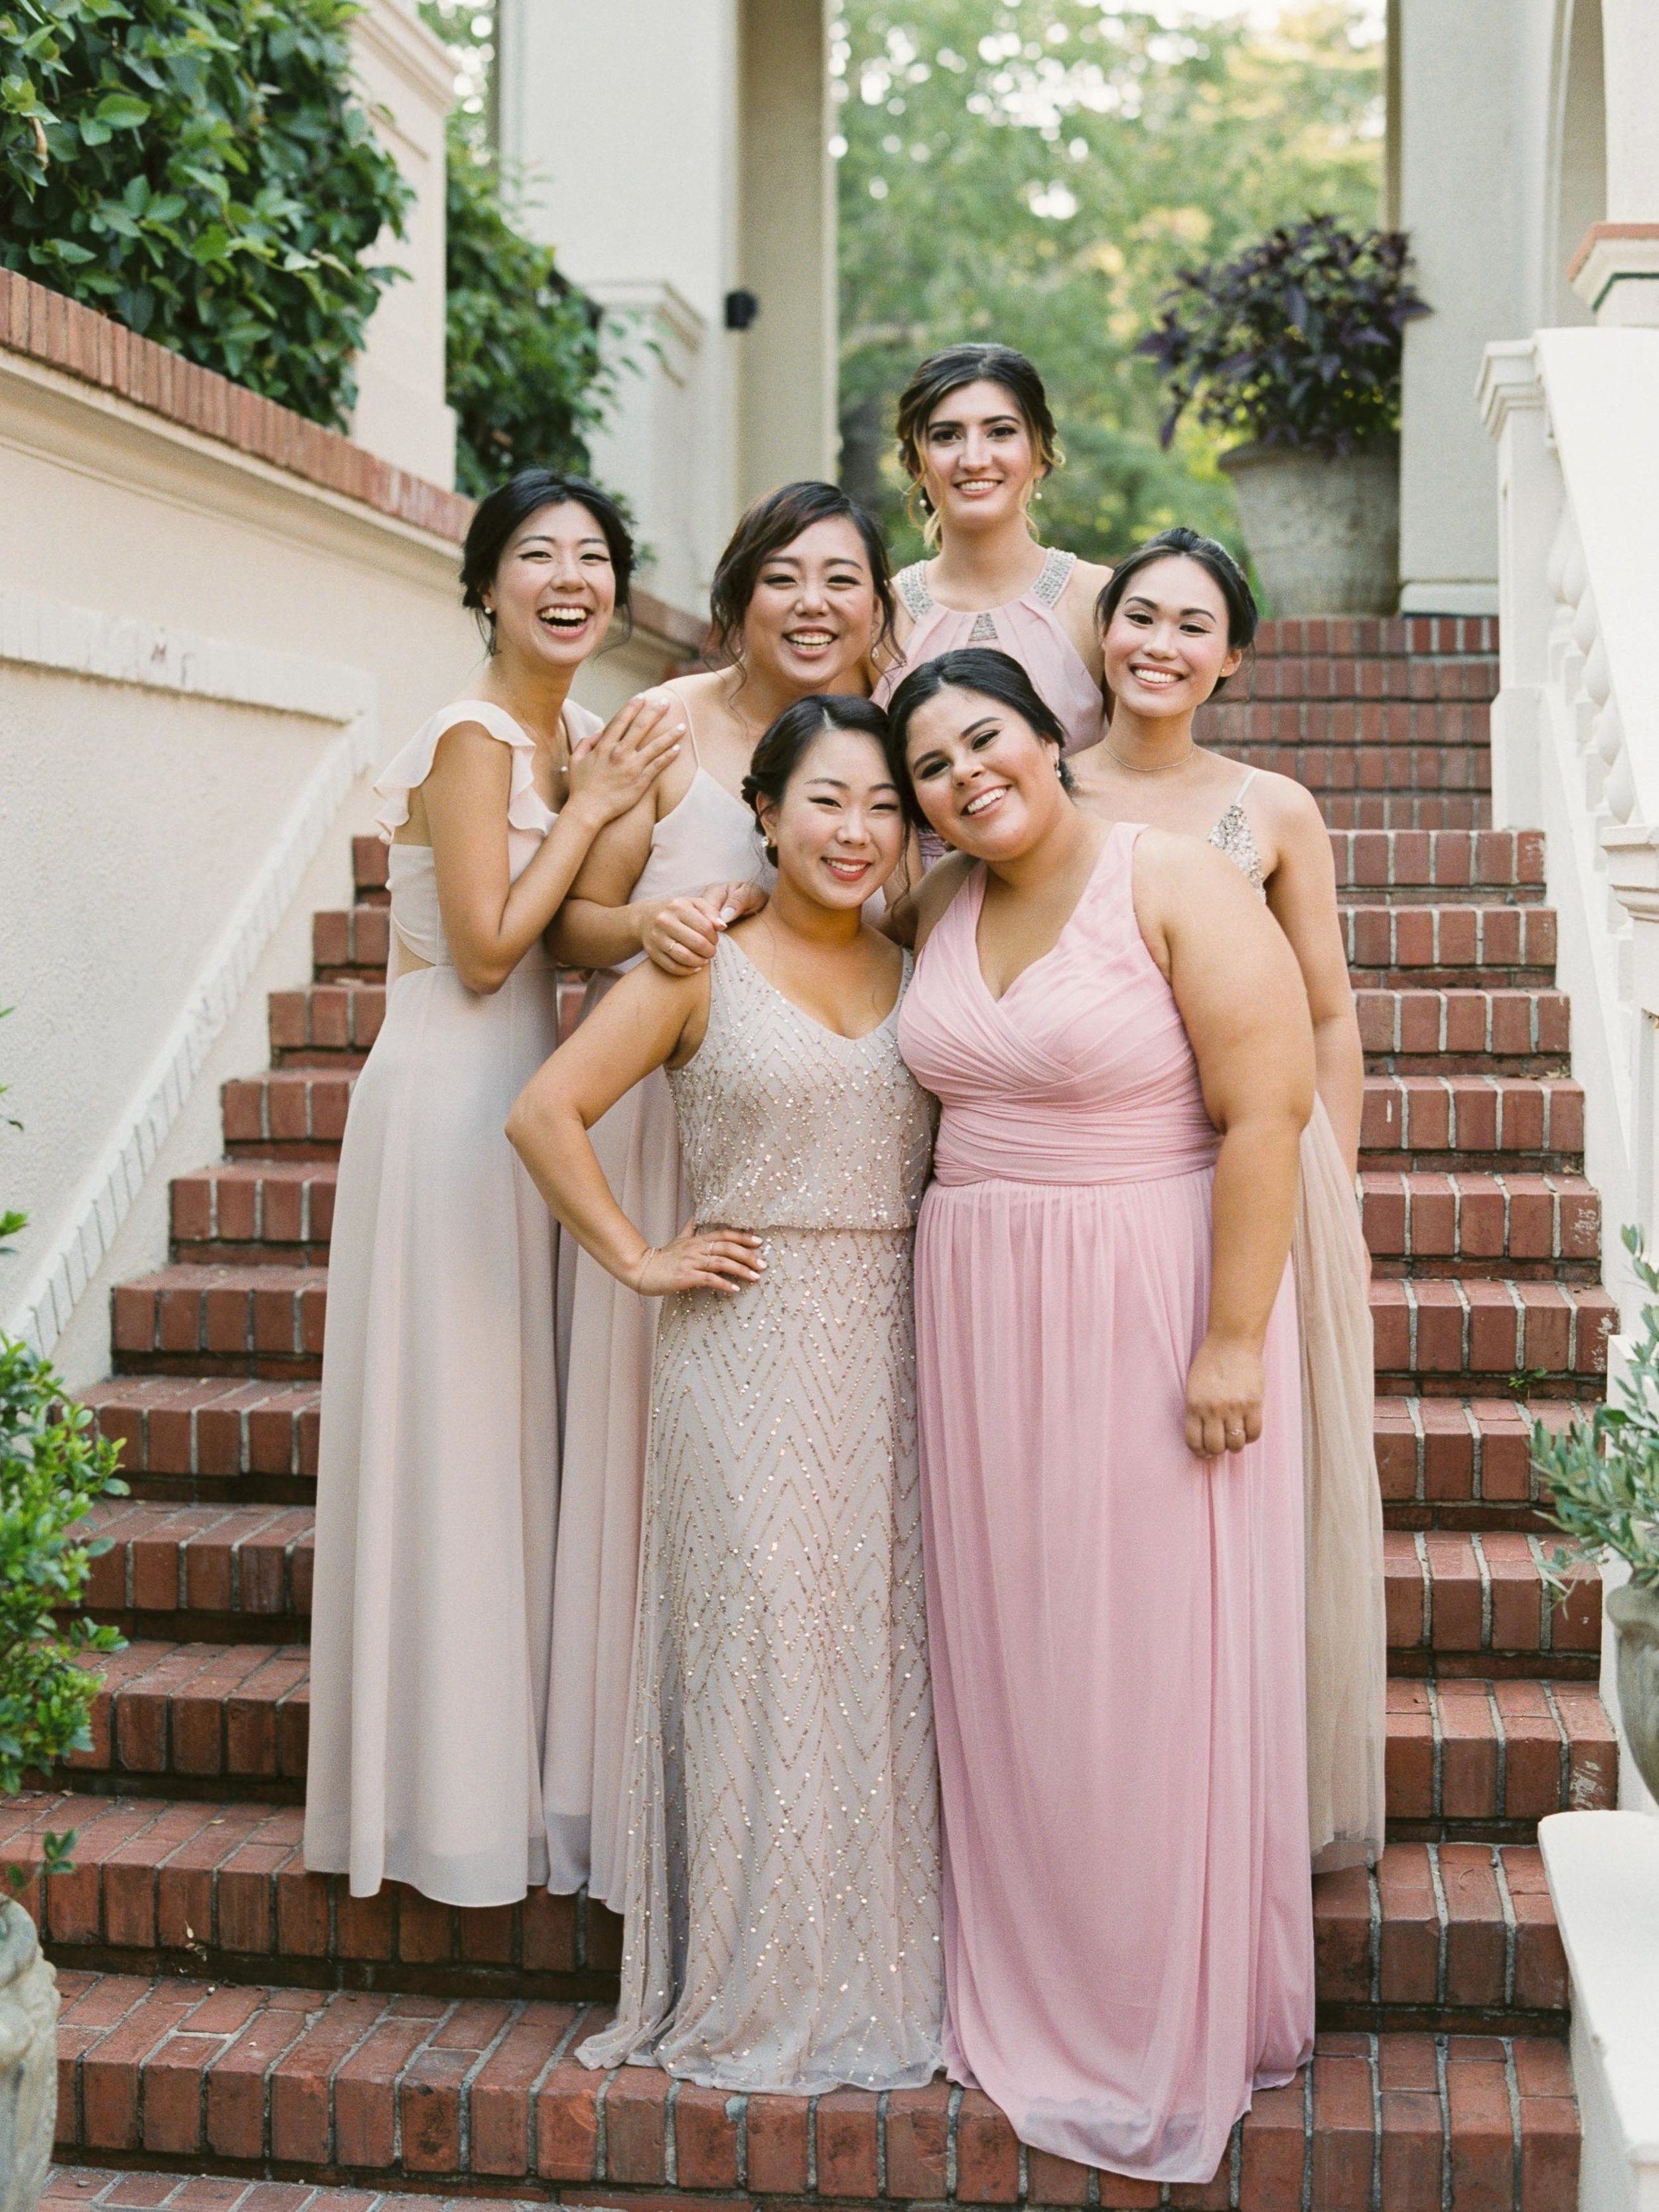 Villa_Montalvo_Wedding_Photographer_Videographer_San_Francisco114.jpg